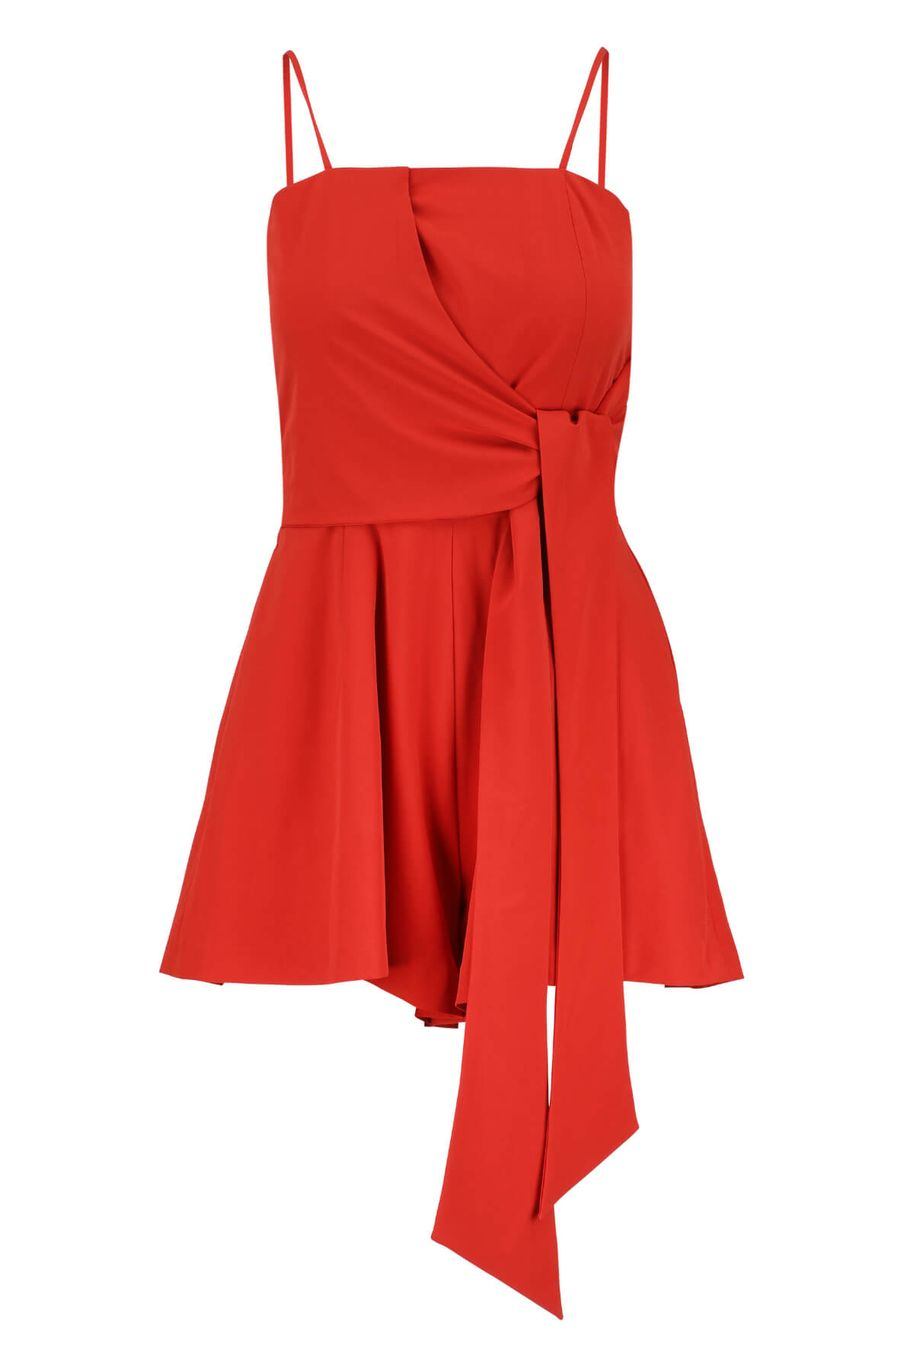 Style Theory_Crazy Rich Asians_quiz_juillet-valencia-front-knot-playsuit-1